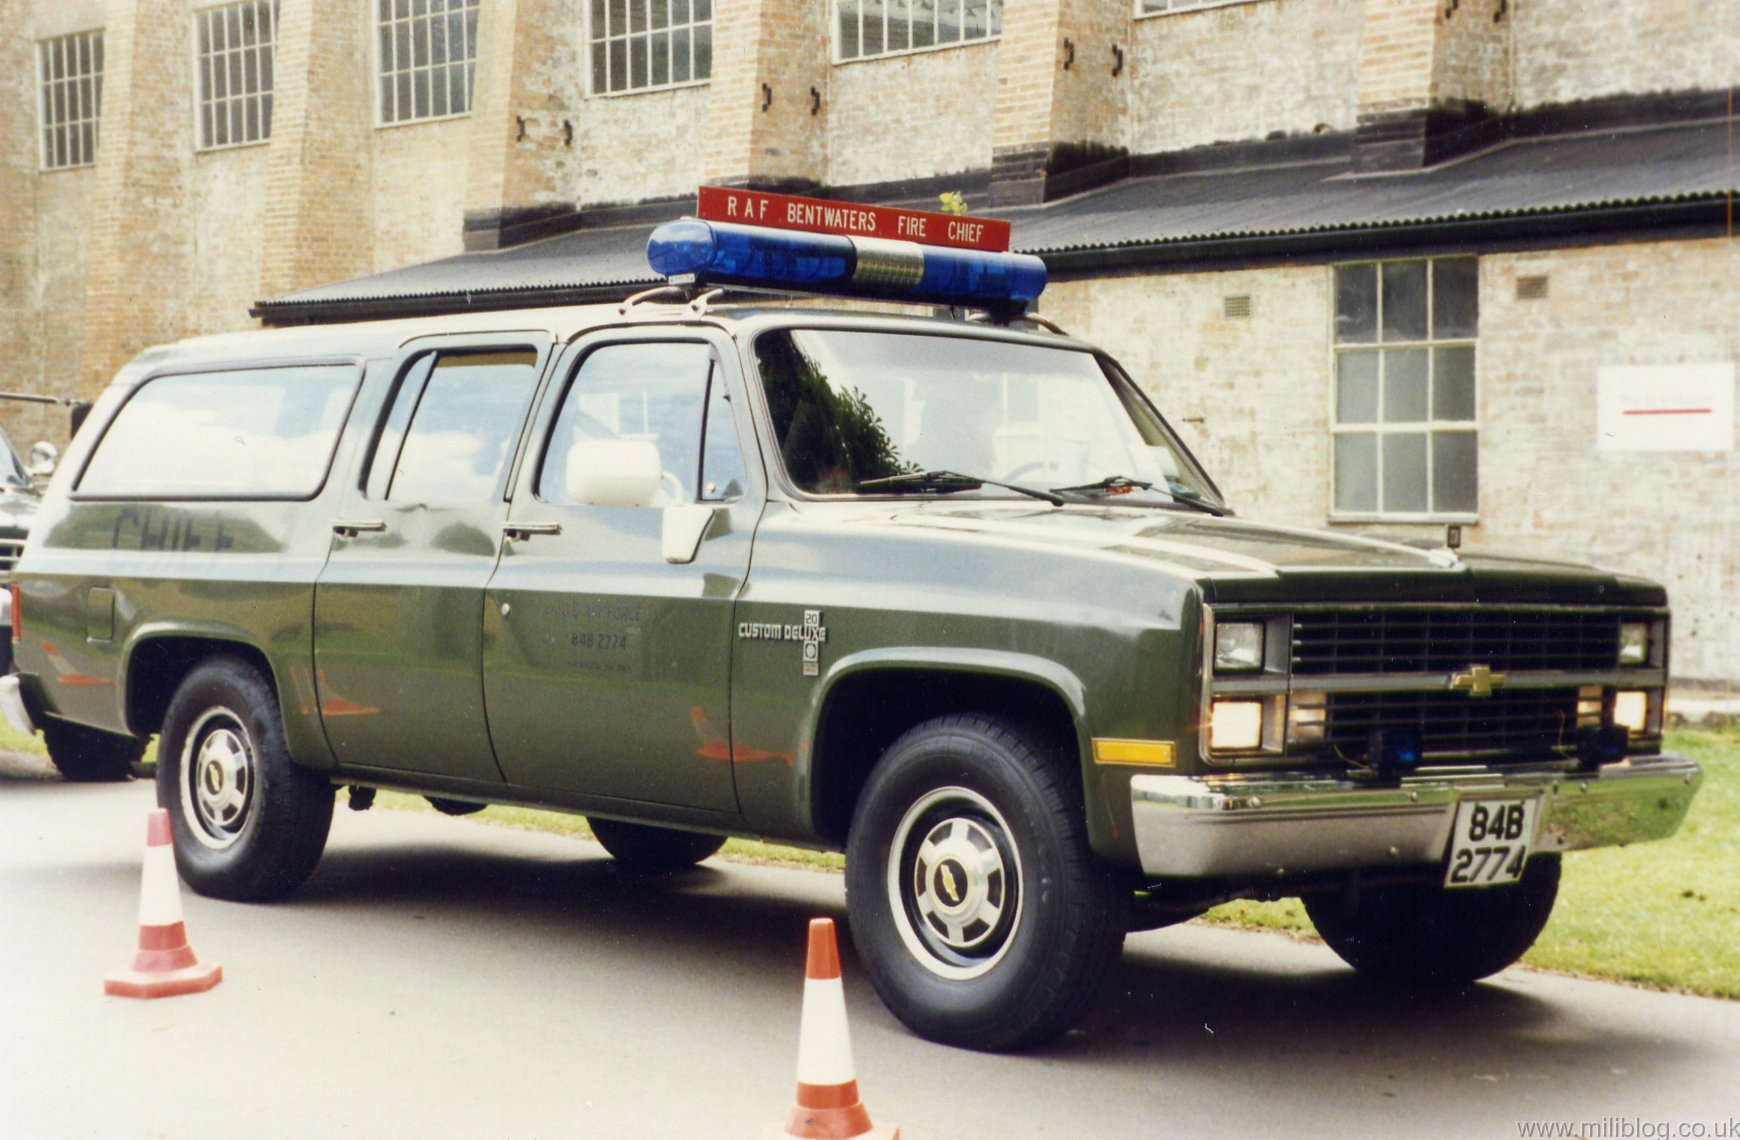 Station Wagon (84B-2774)